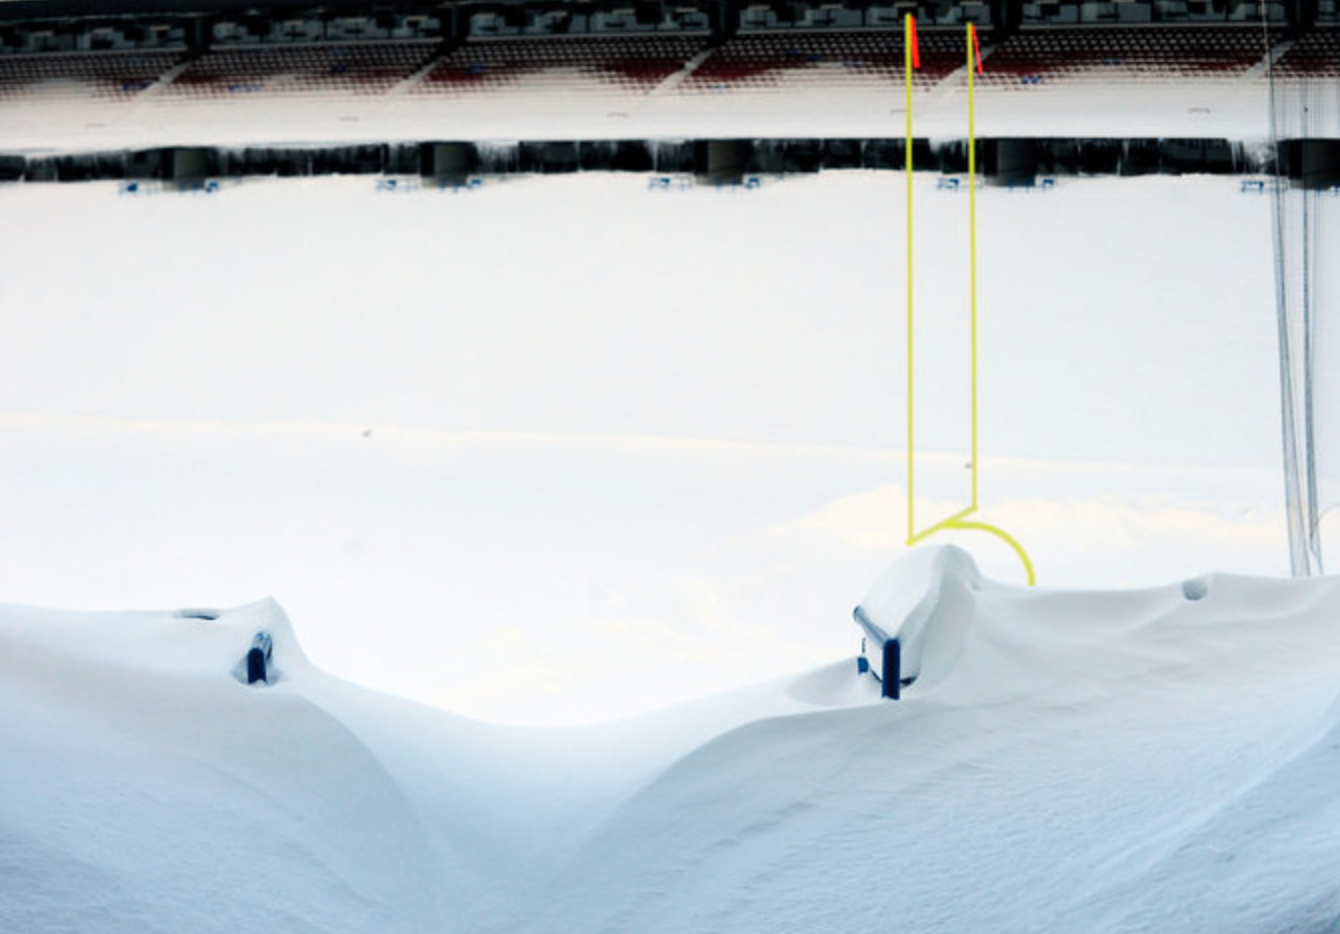 Ralph Wilson Stadium, the Buffalo Bills' home field, in Orchard Park, N.Y., on Friday, after winter storms had left as much as six feet of snow across the region. (Gary Wiepert/Associated Press)